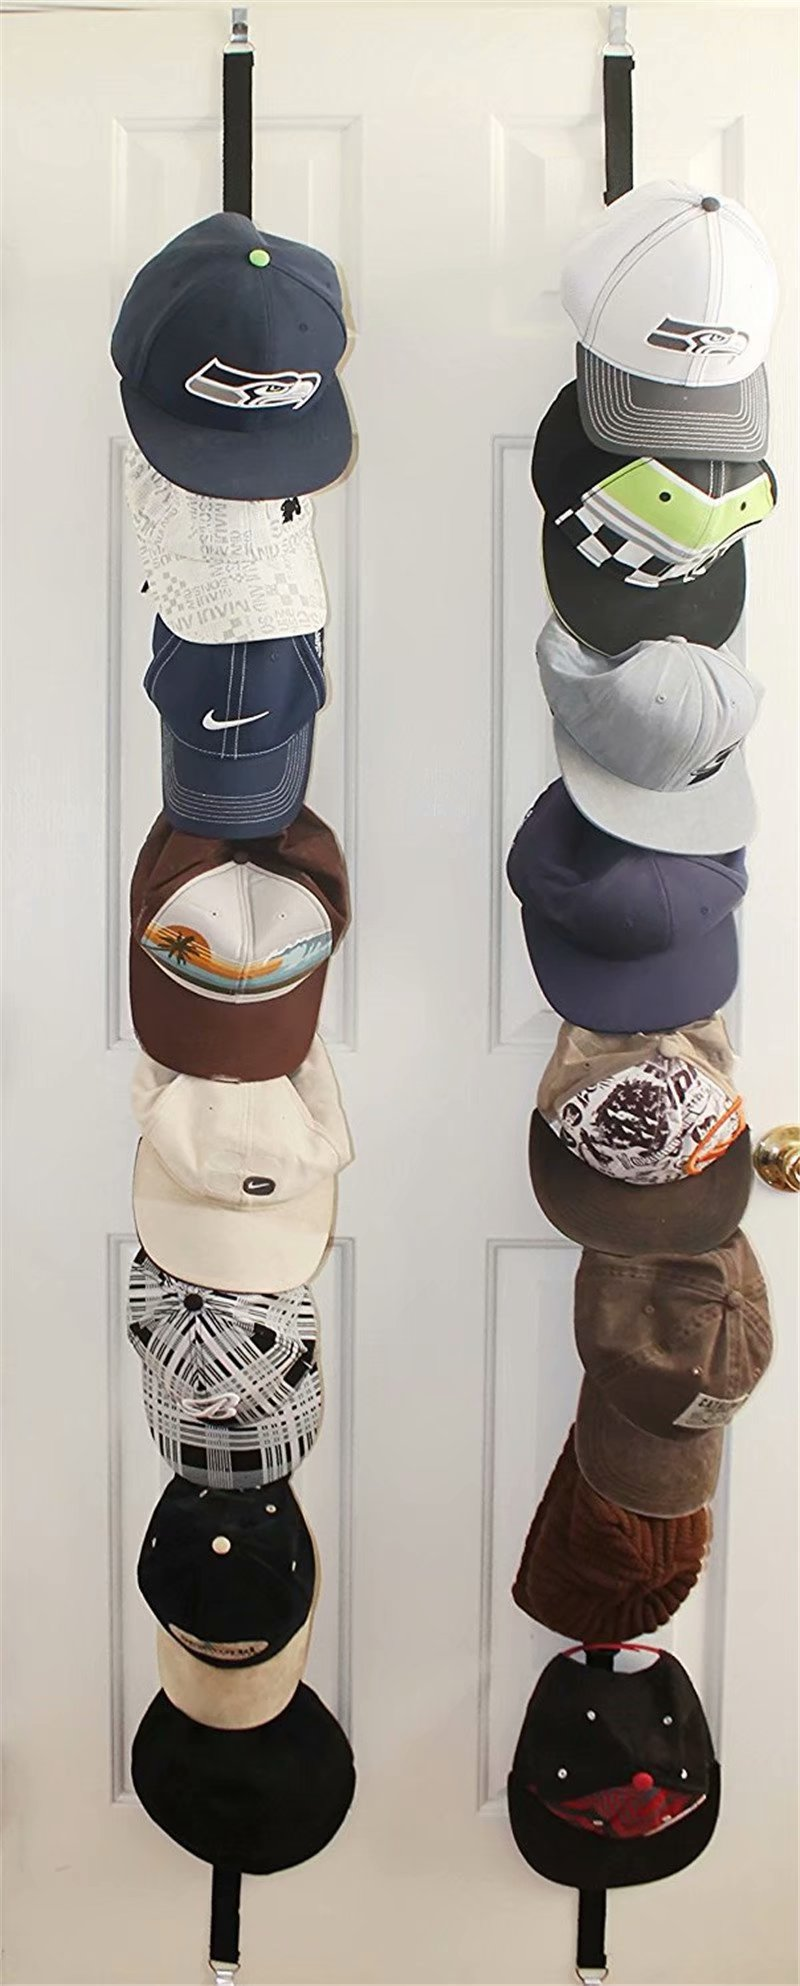 cap rack 2 pack holds up to 16 caps for baseball hats ball caps best over door closet organizer for men boy or women hat collections display